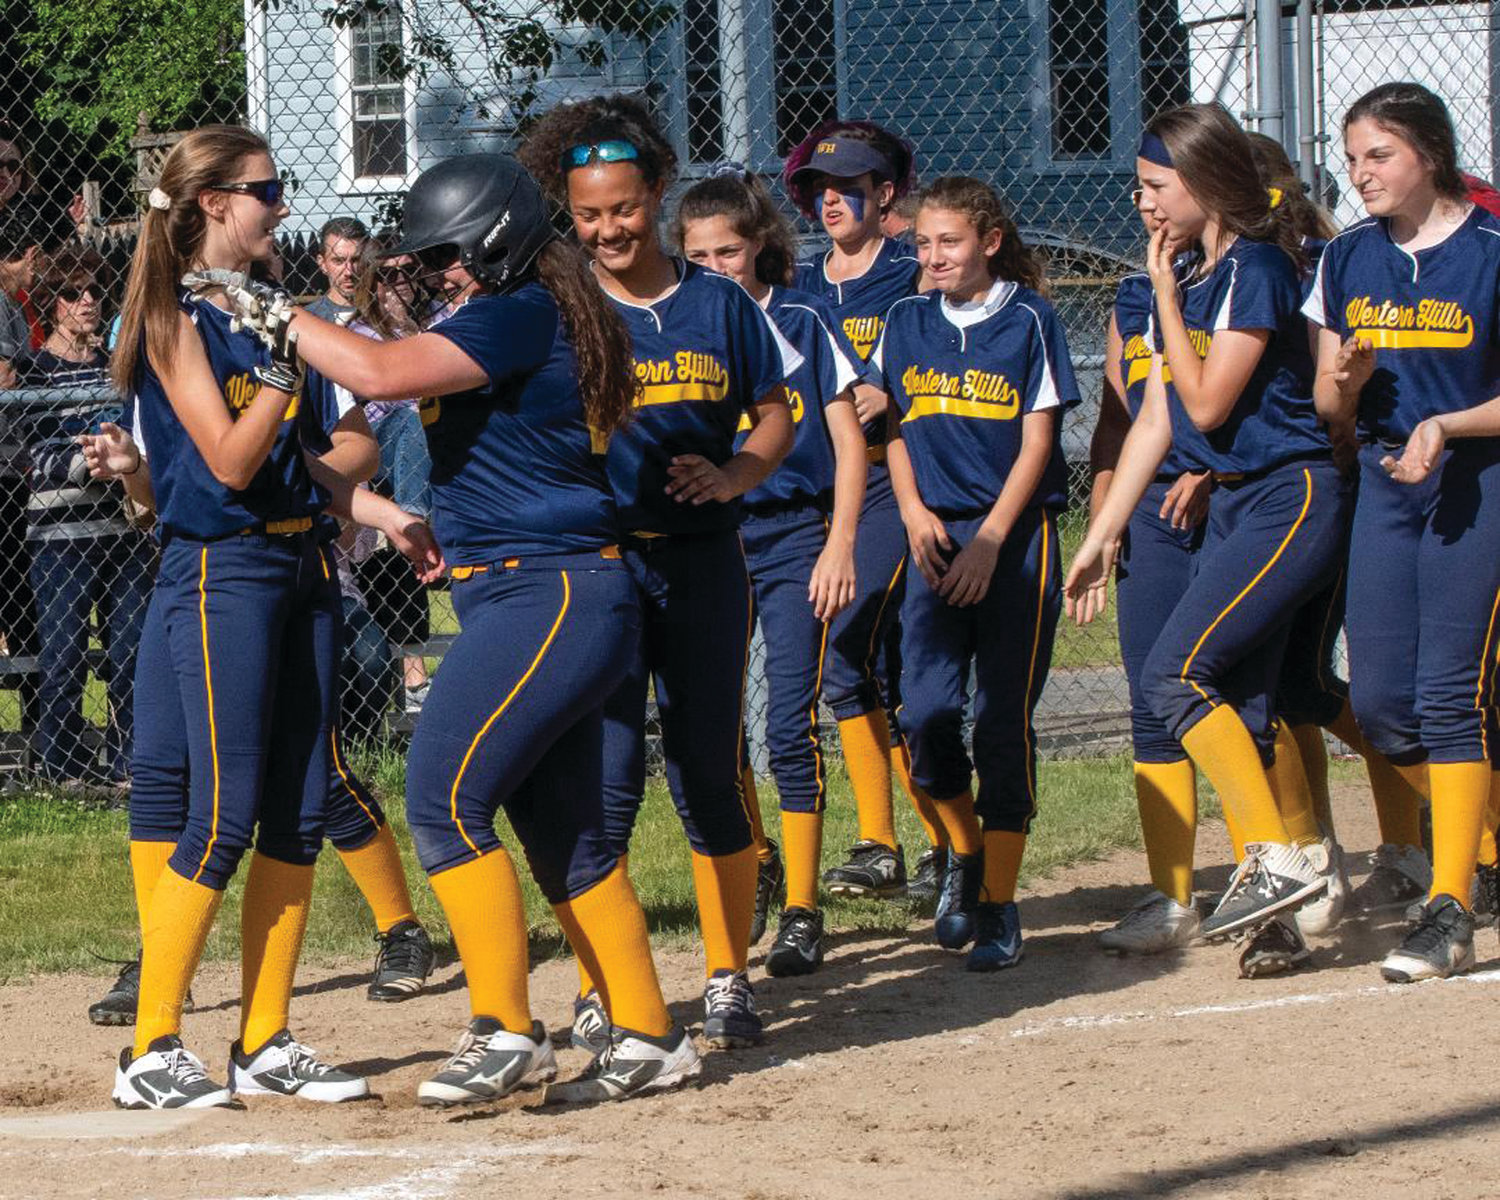 WELCOME HOME: Western Hills celebrates after a home run.